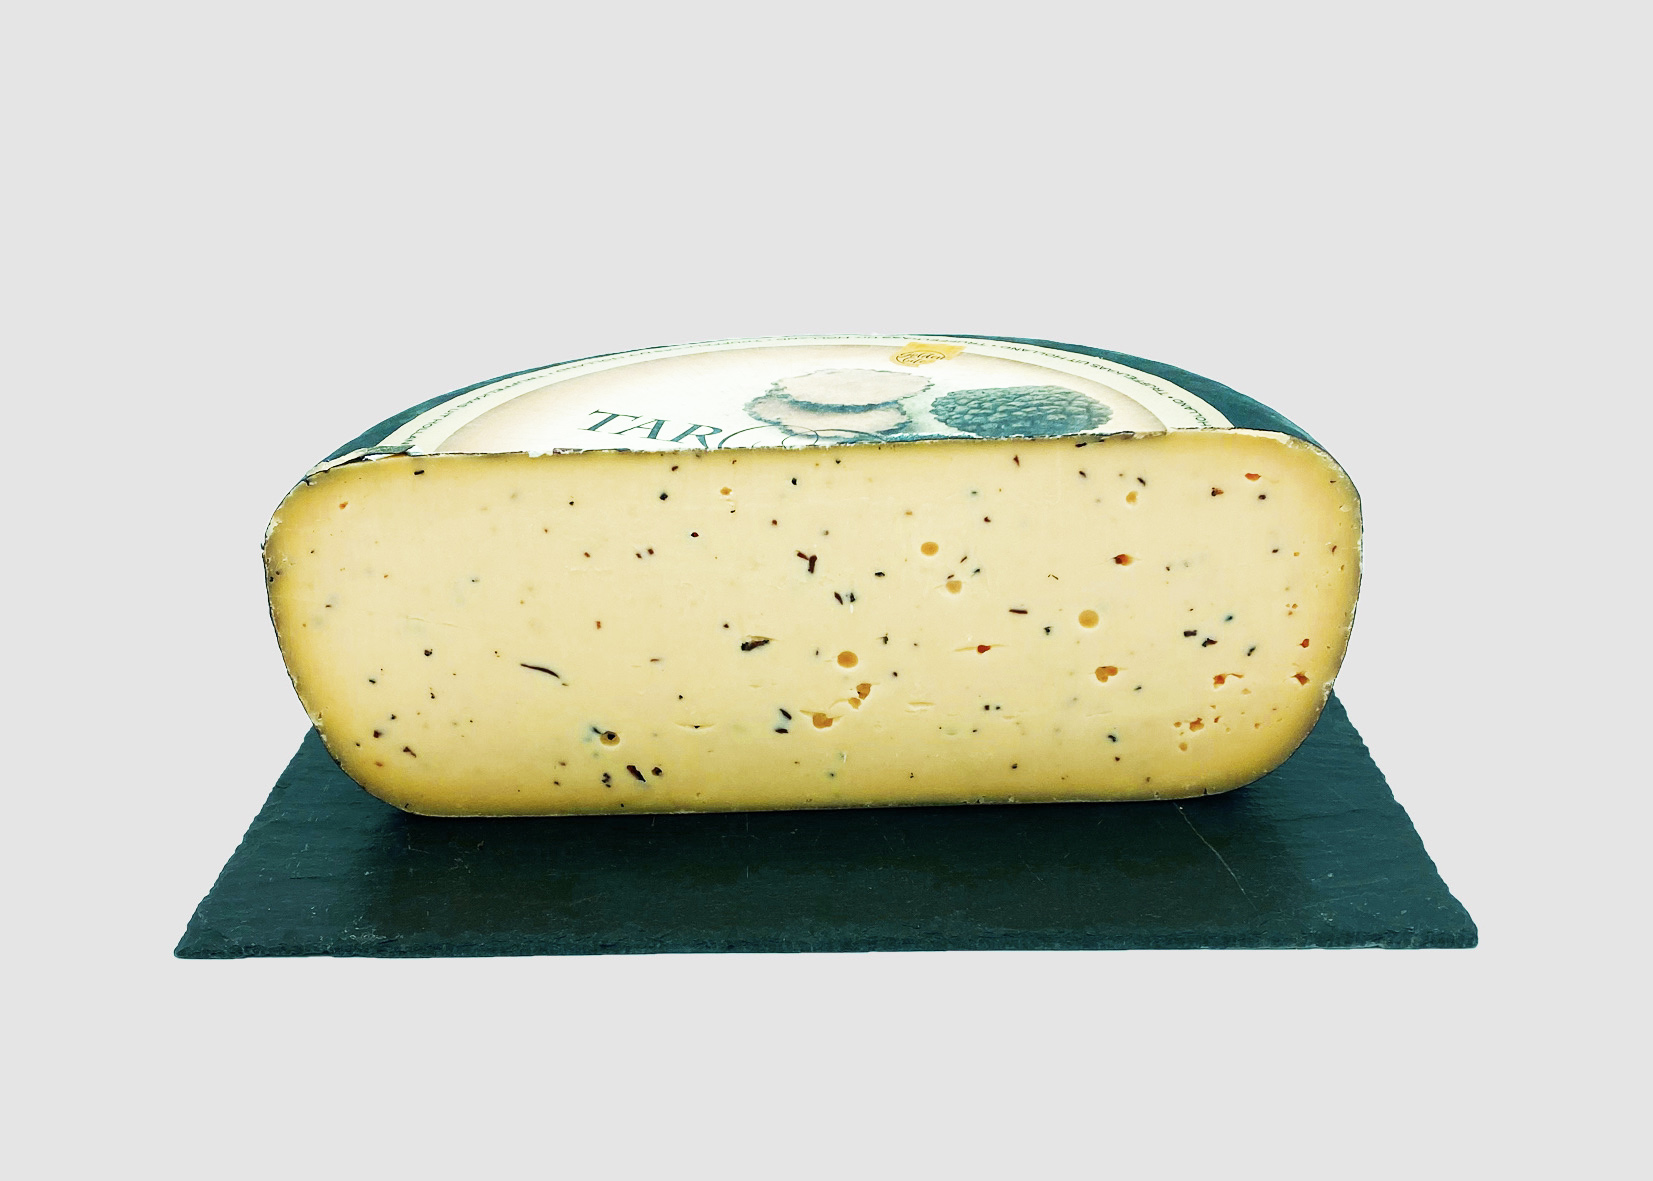 tome-raclette-truffes-fromage-napoleon copie